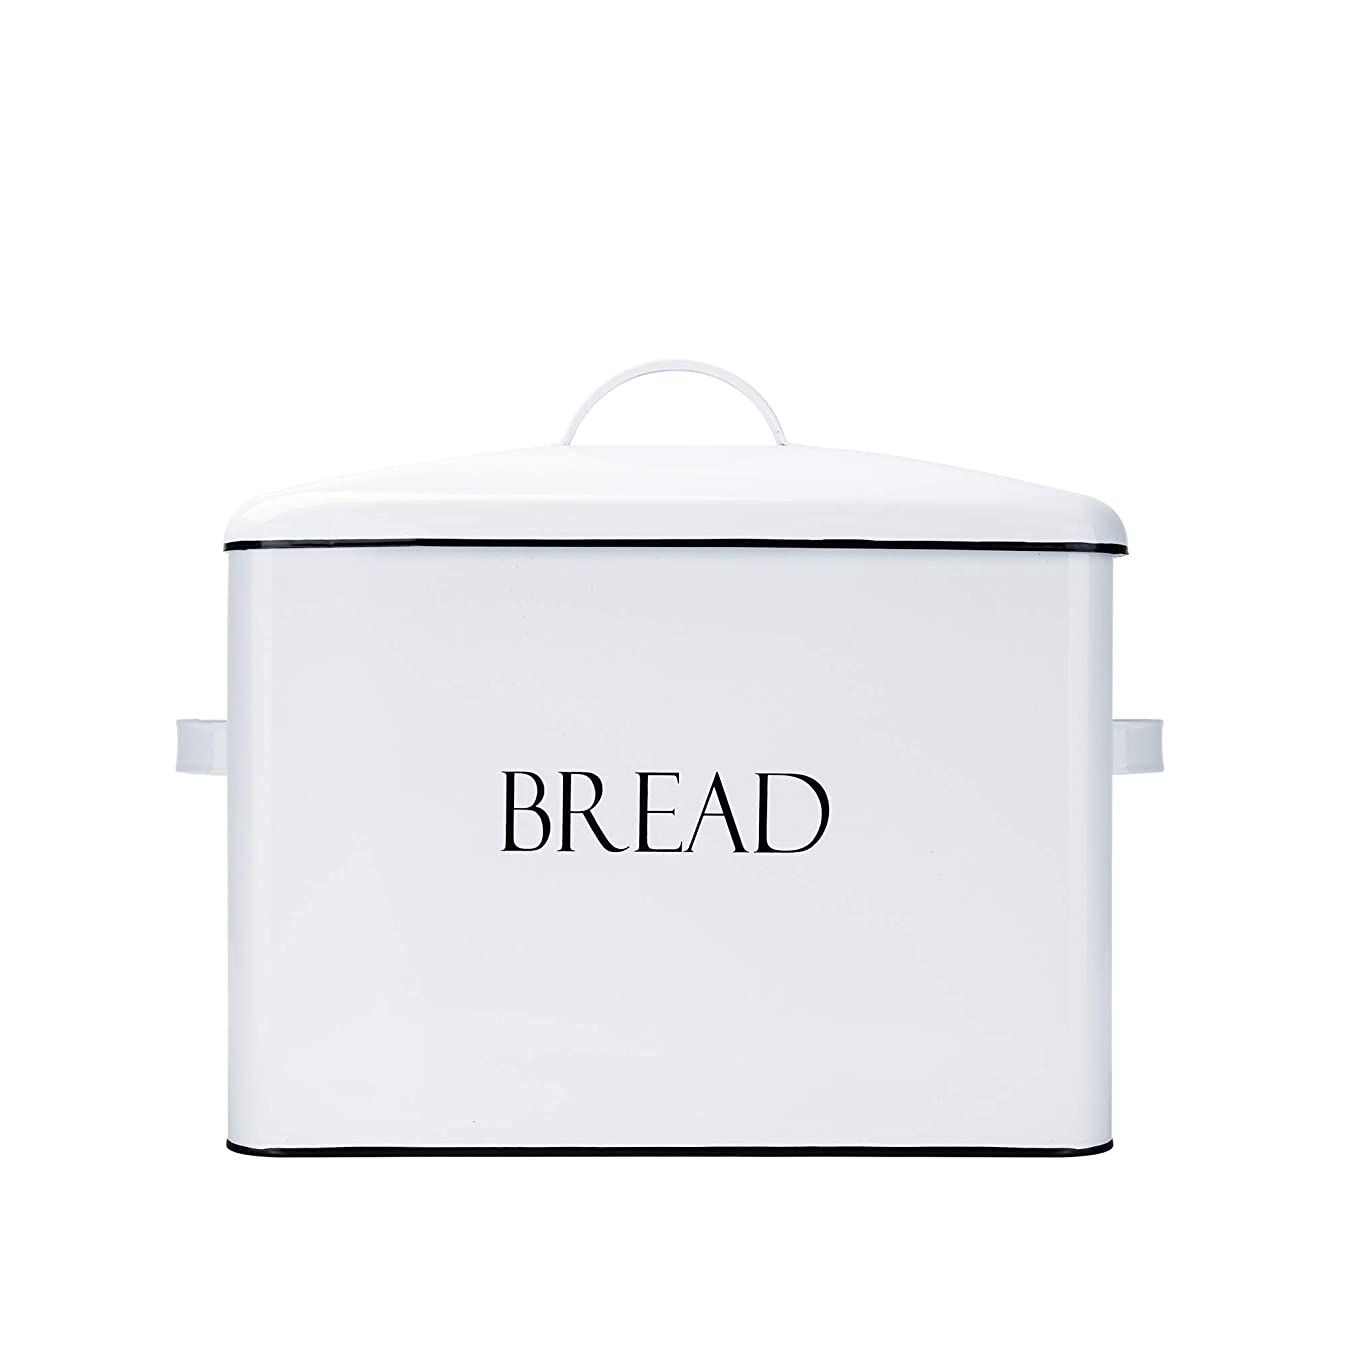 Outshine Vintage Metal Bread Bin - Countertop Space-Saving, Extra Large, High Capacity Bread Storage Box for your Kitchen - Holds 2+ Loaves 13